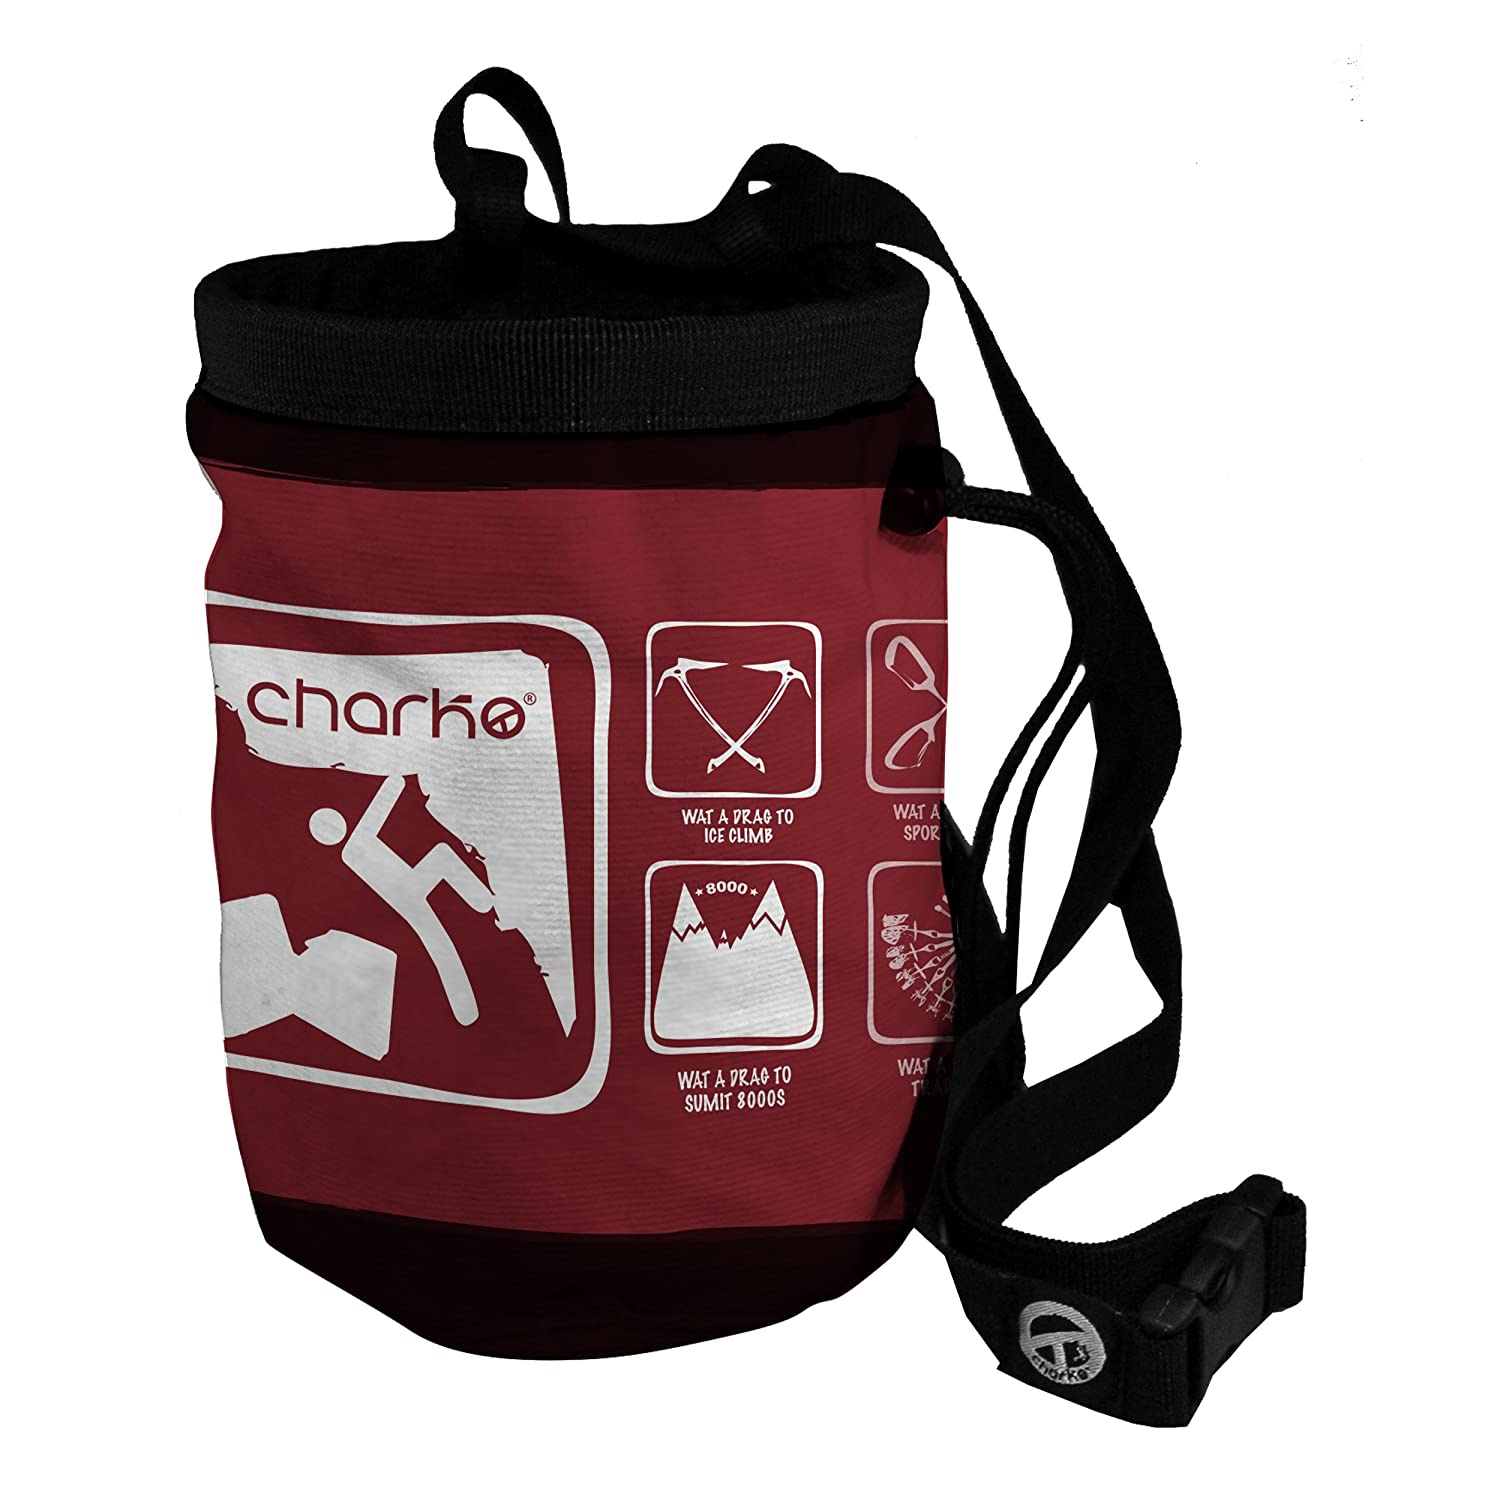 CHARKO WMCBNEBR016 Charko Designs Nebraska Bag Multicolor One Size CLIMBING PROJECTS DESIGNS SL